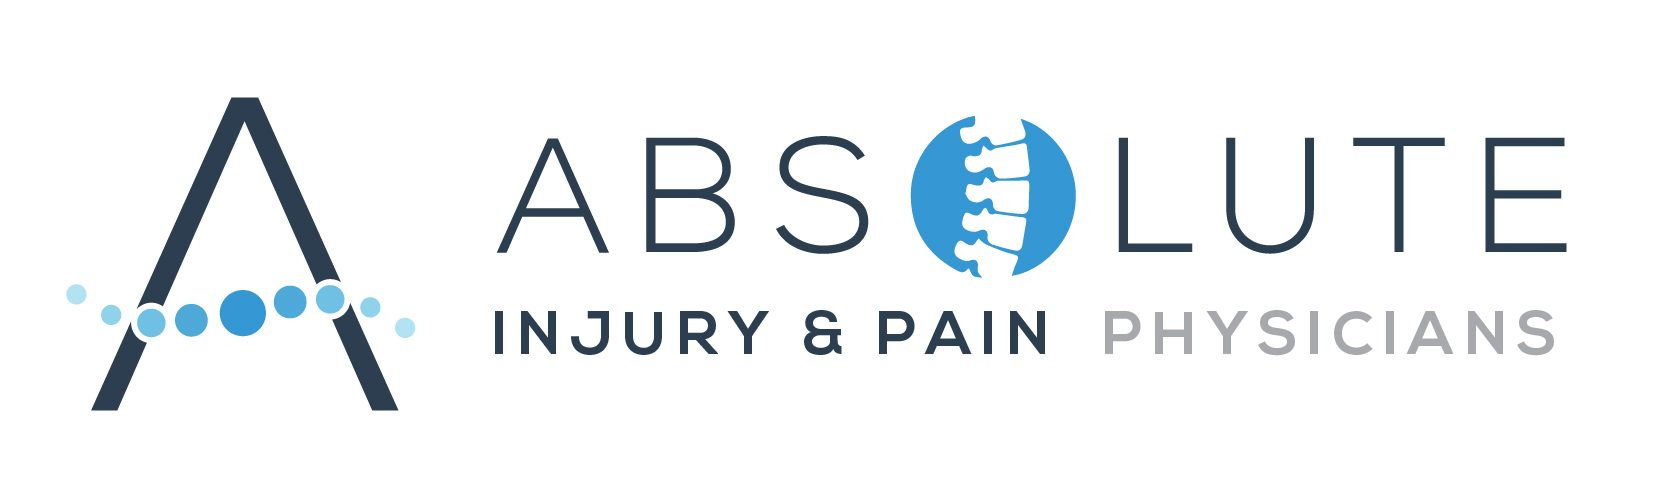 Absolute Injury and Pain Physicians